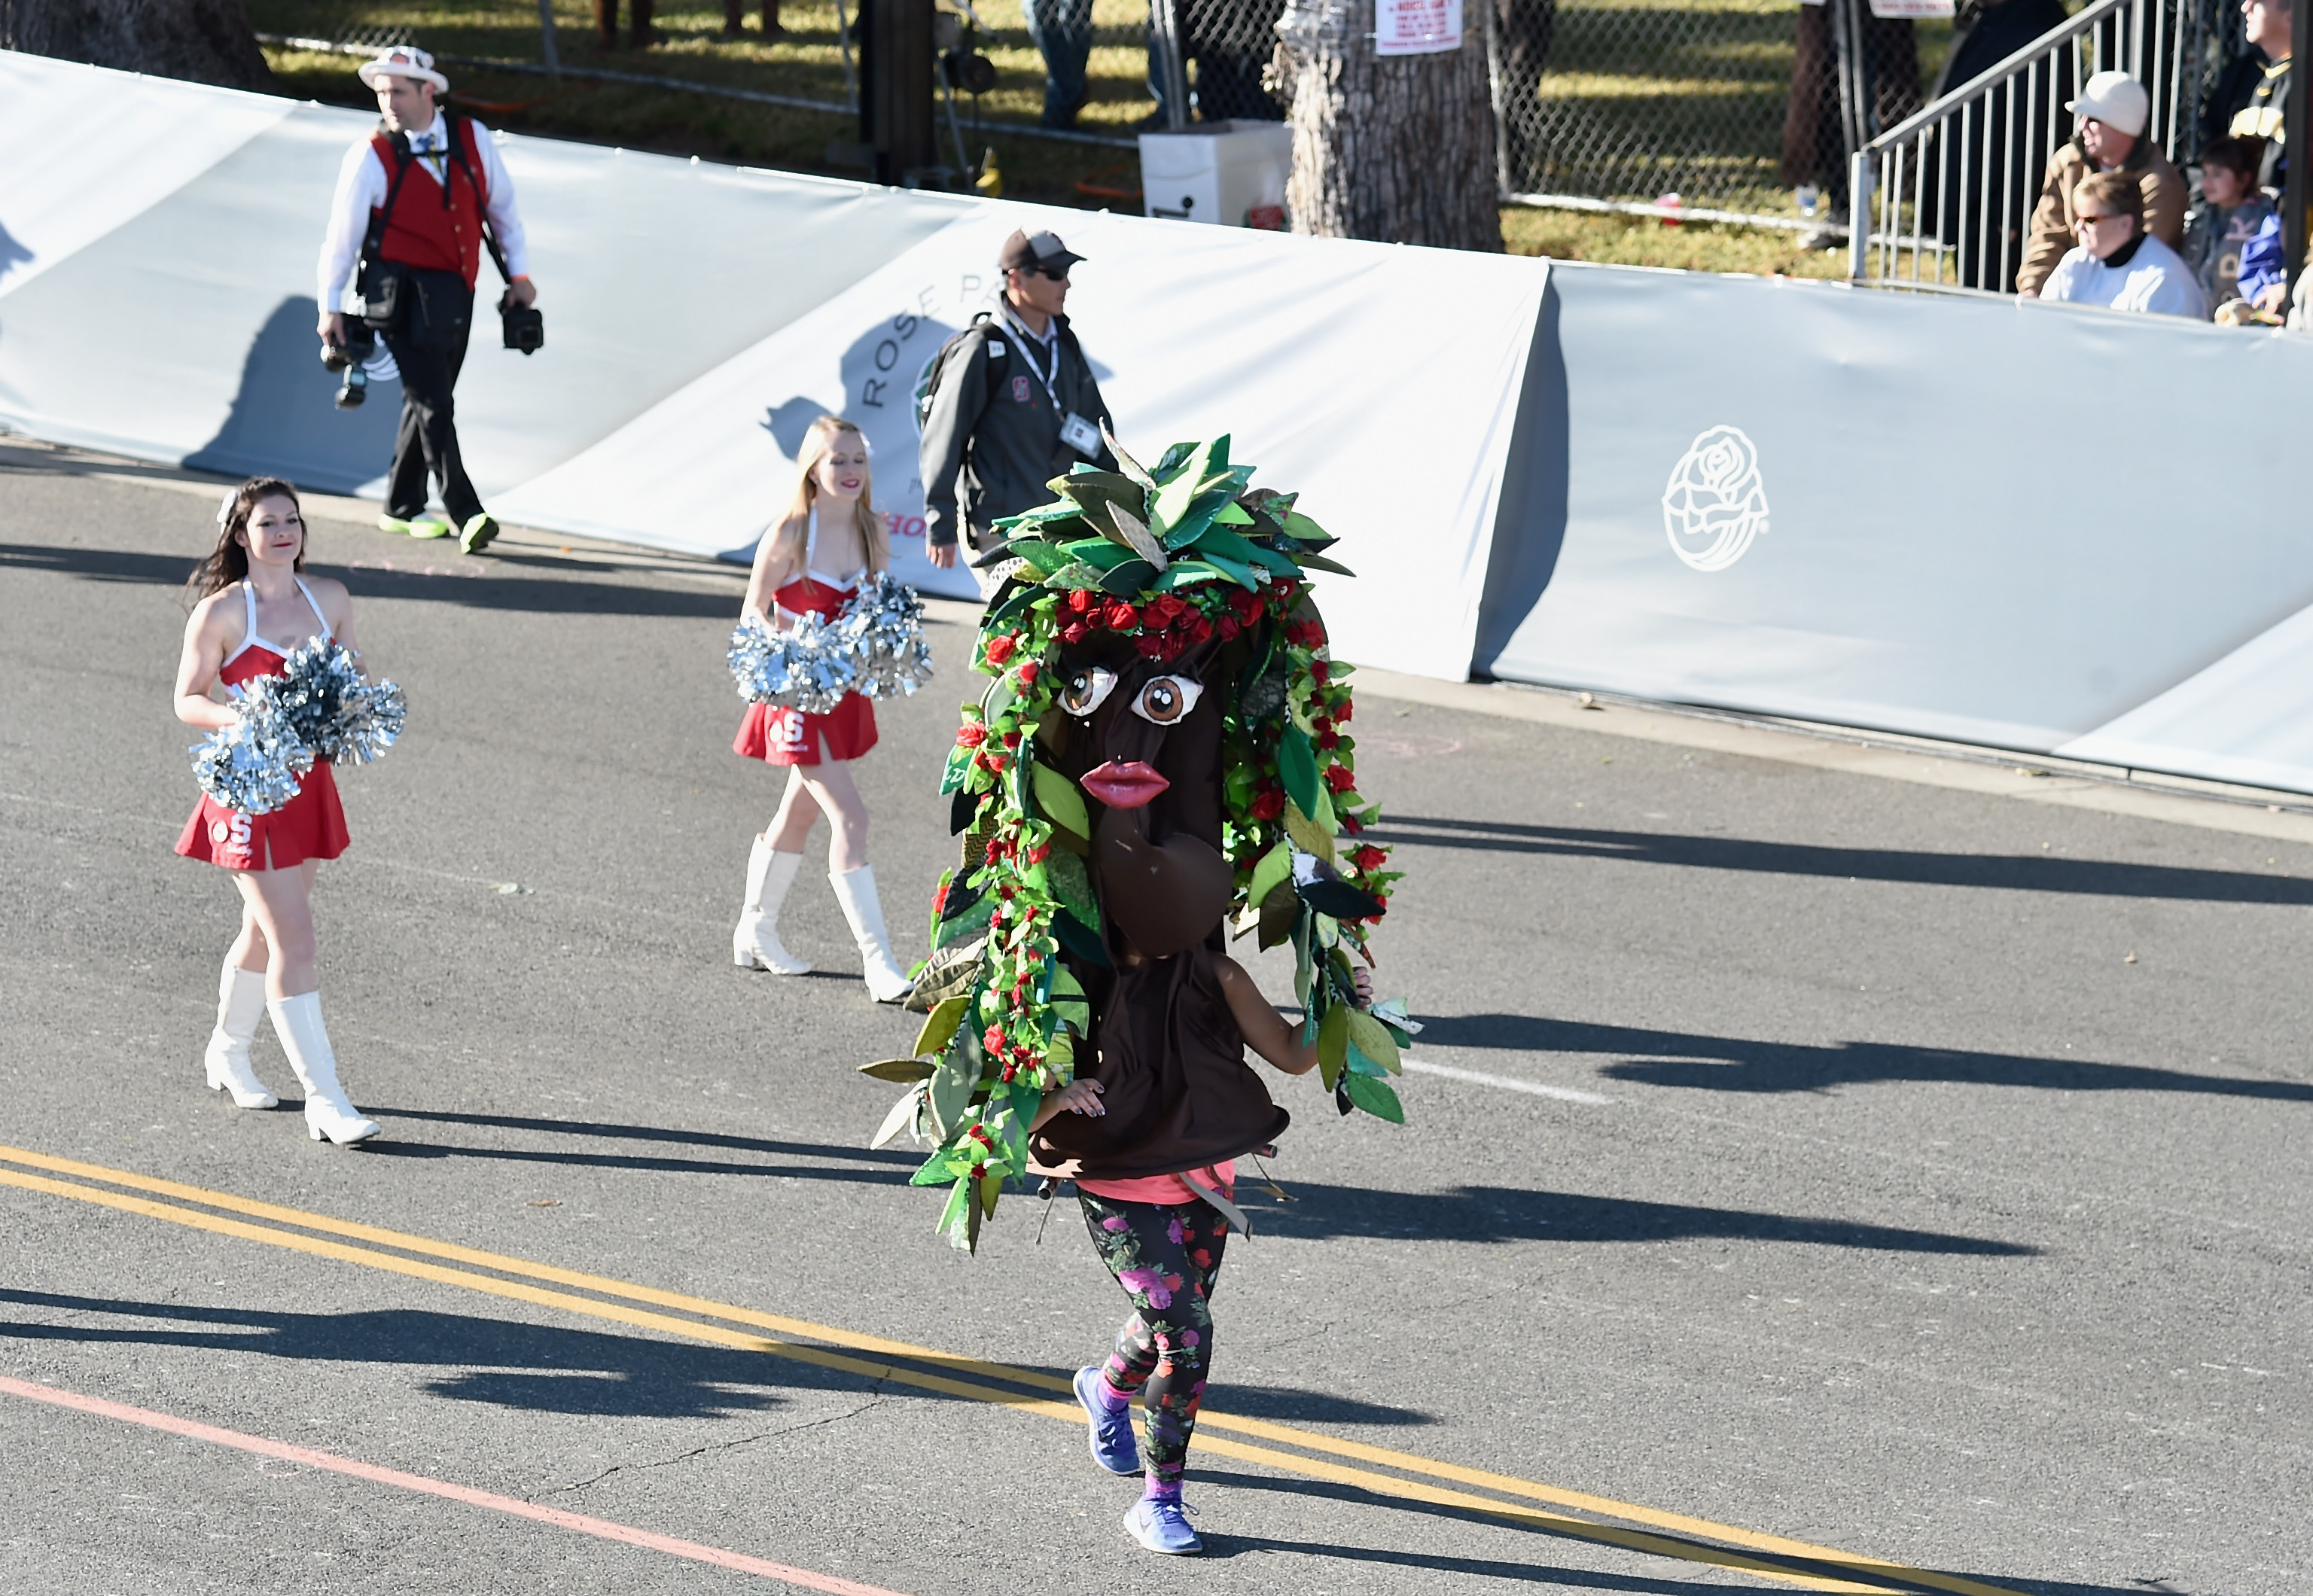 127th Tournament Of Roses Parade Presented By Honda